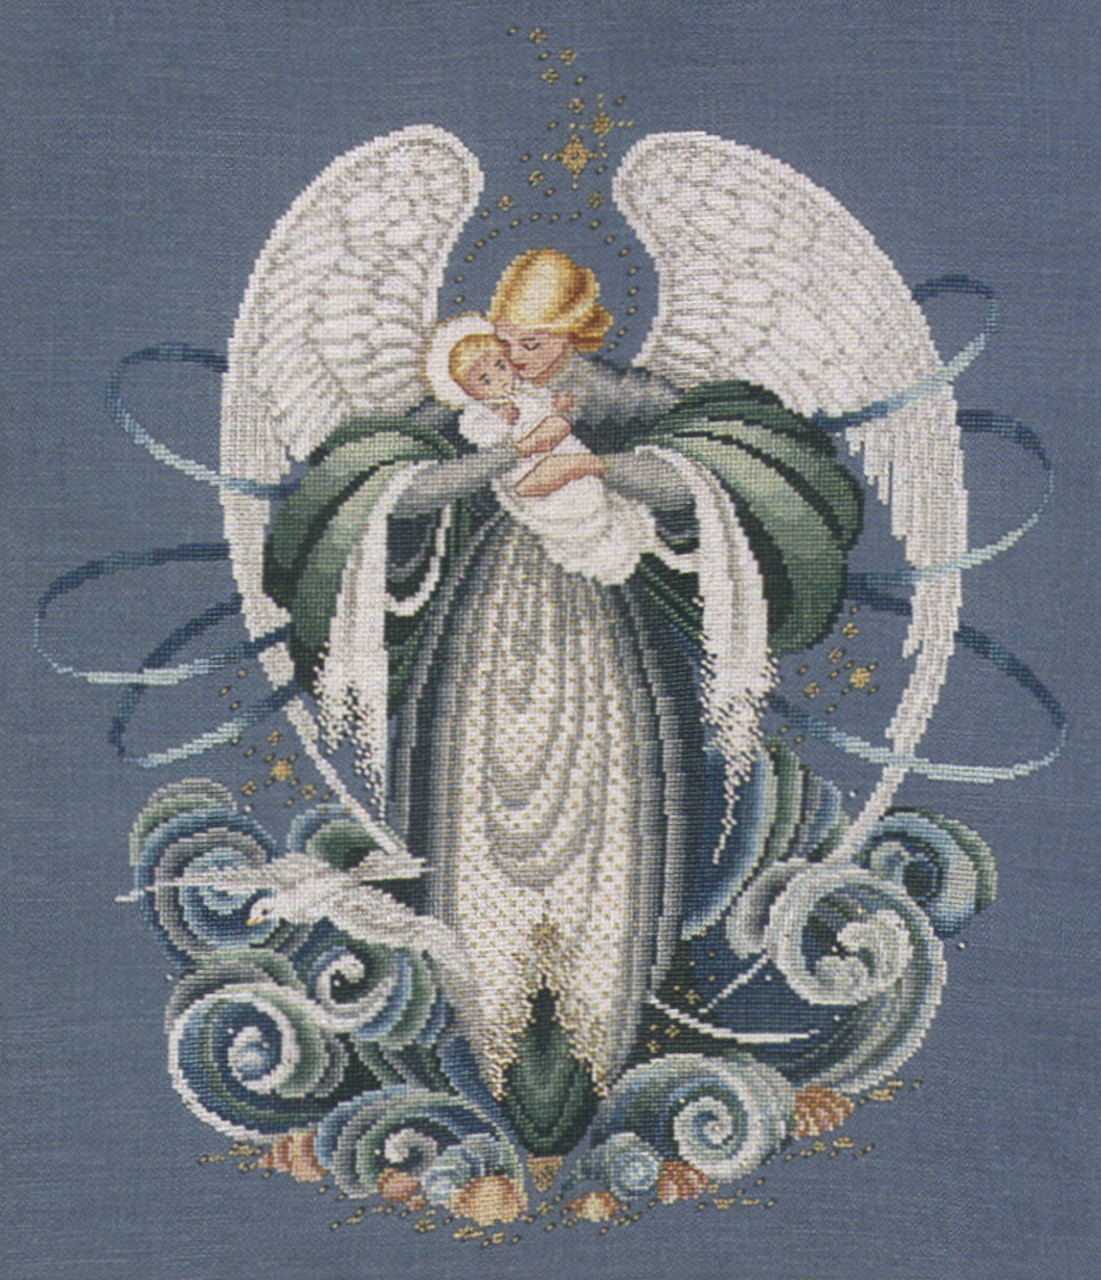 Lavender & Lace - Angel of the Sea